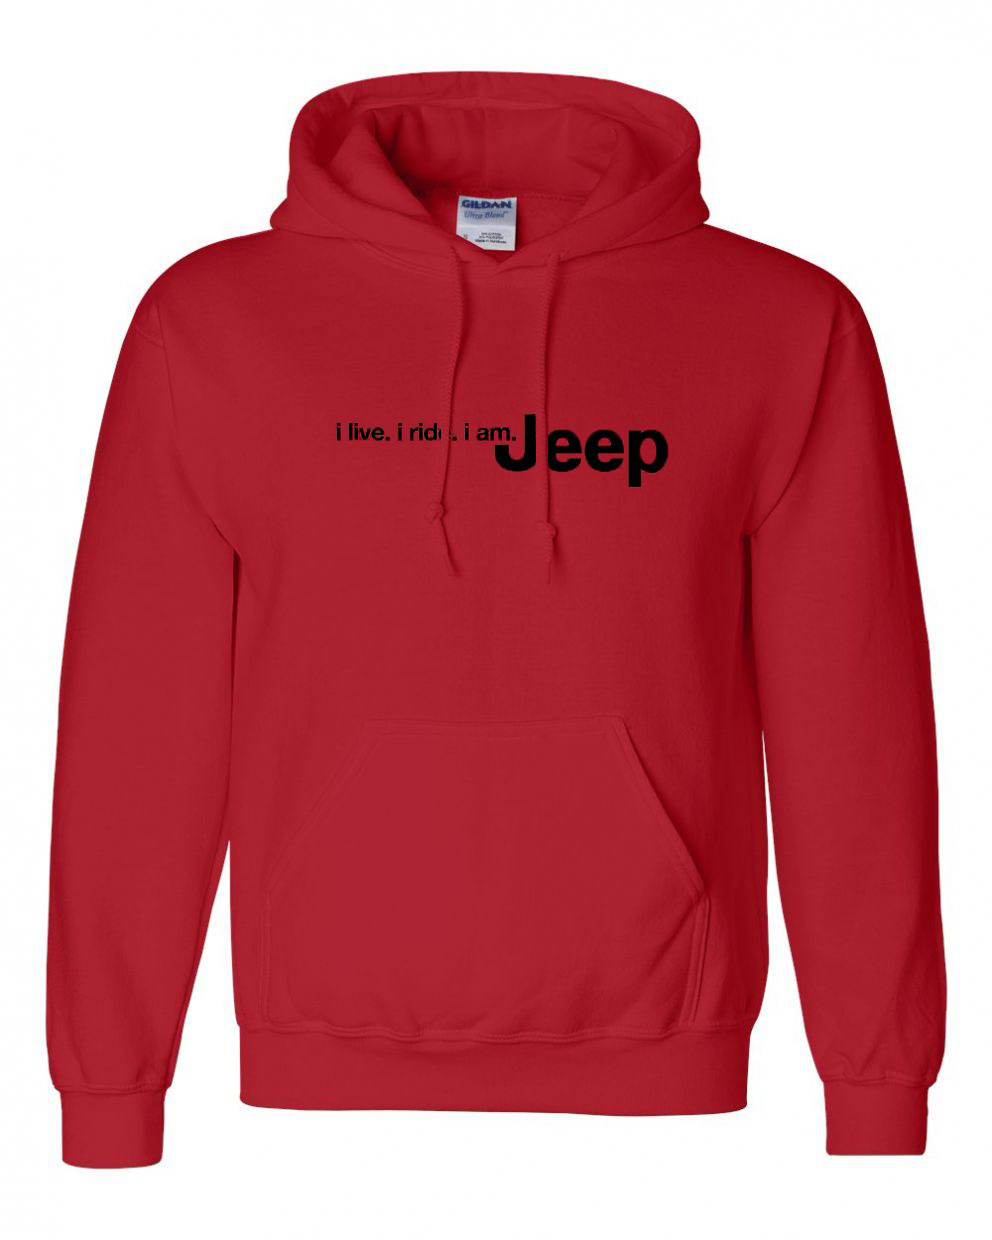 Jeep Sweatshirts And Hoodies For Sale Officially Licensed Jeep Pullover And Zip Hoodies